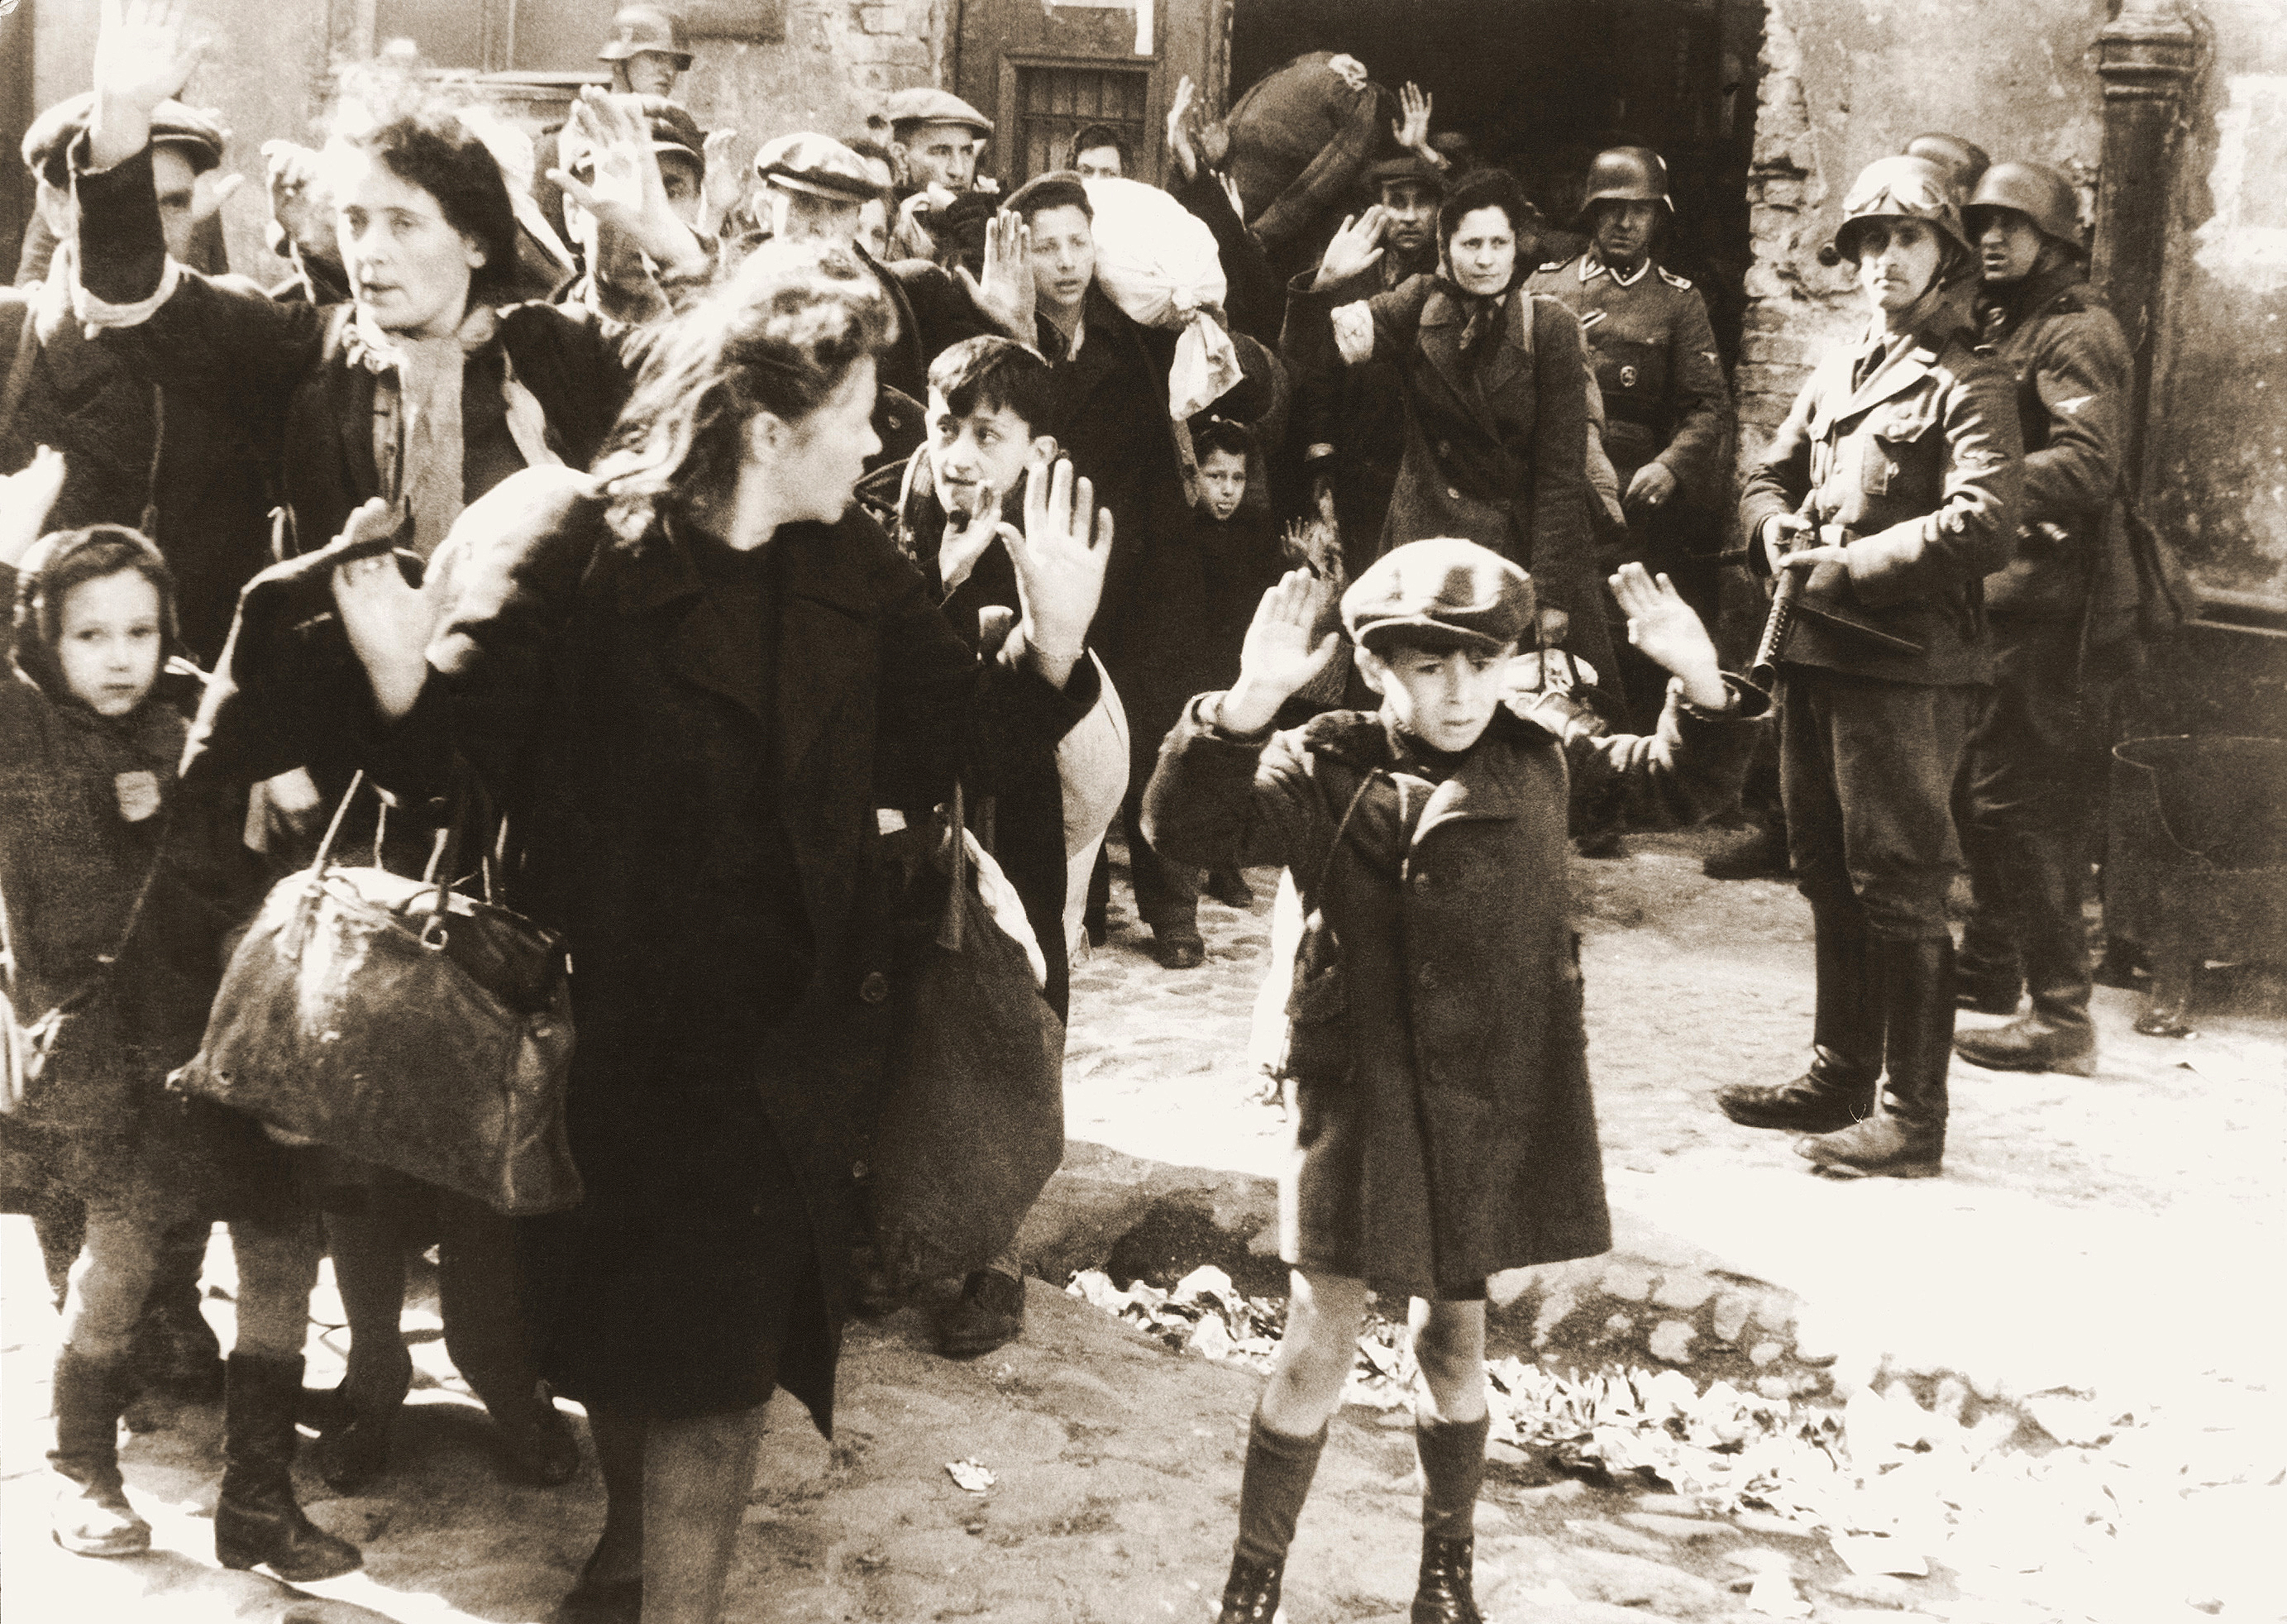 https://upload.wikimedia.org/wikipedia/commons/0/0b/Stroop_Report_-_Warsaw_Ghetto_Uprising_06b.jpg